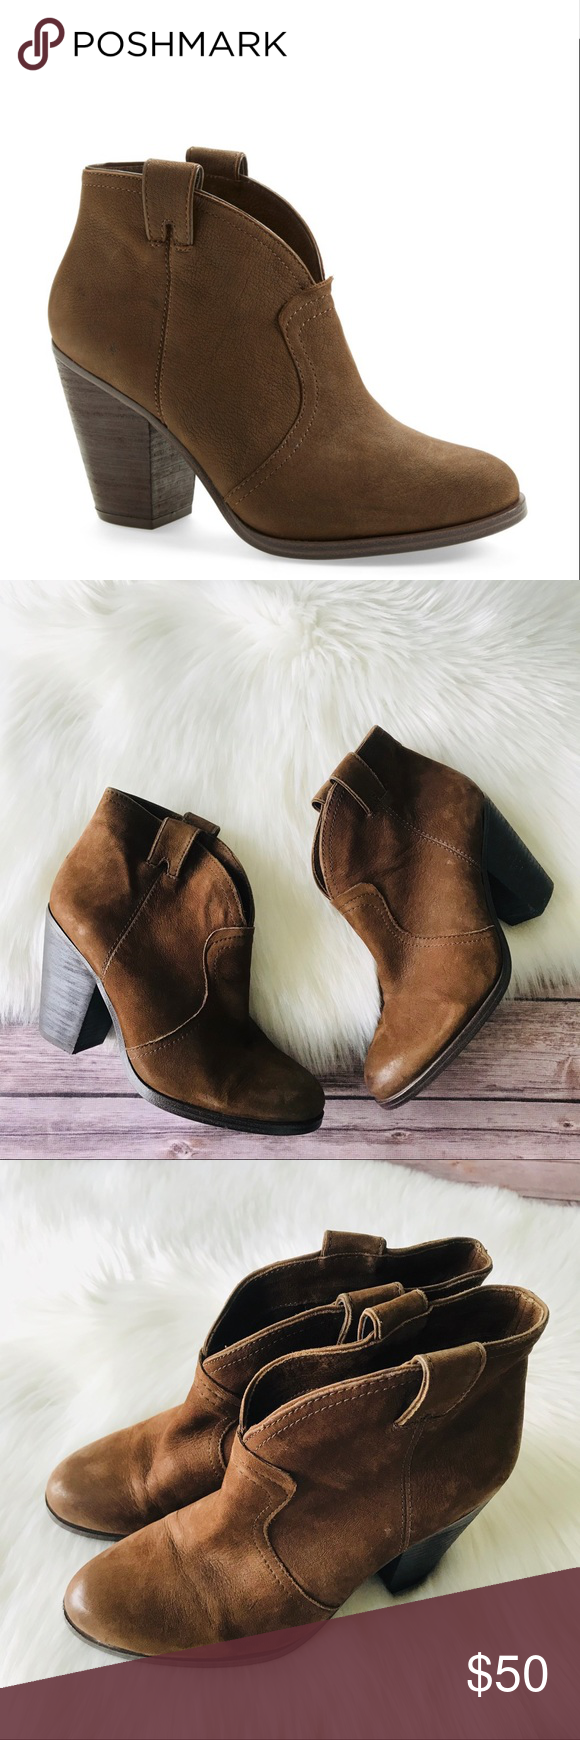 Vince Camuto Hillsy Ankle Bootie Shoes 8.5